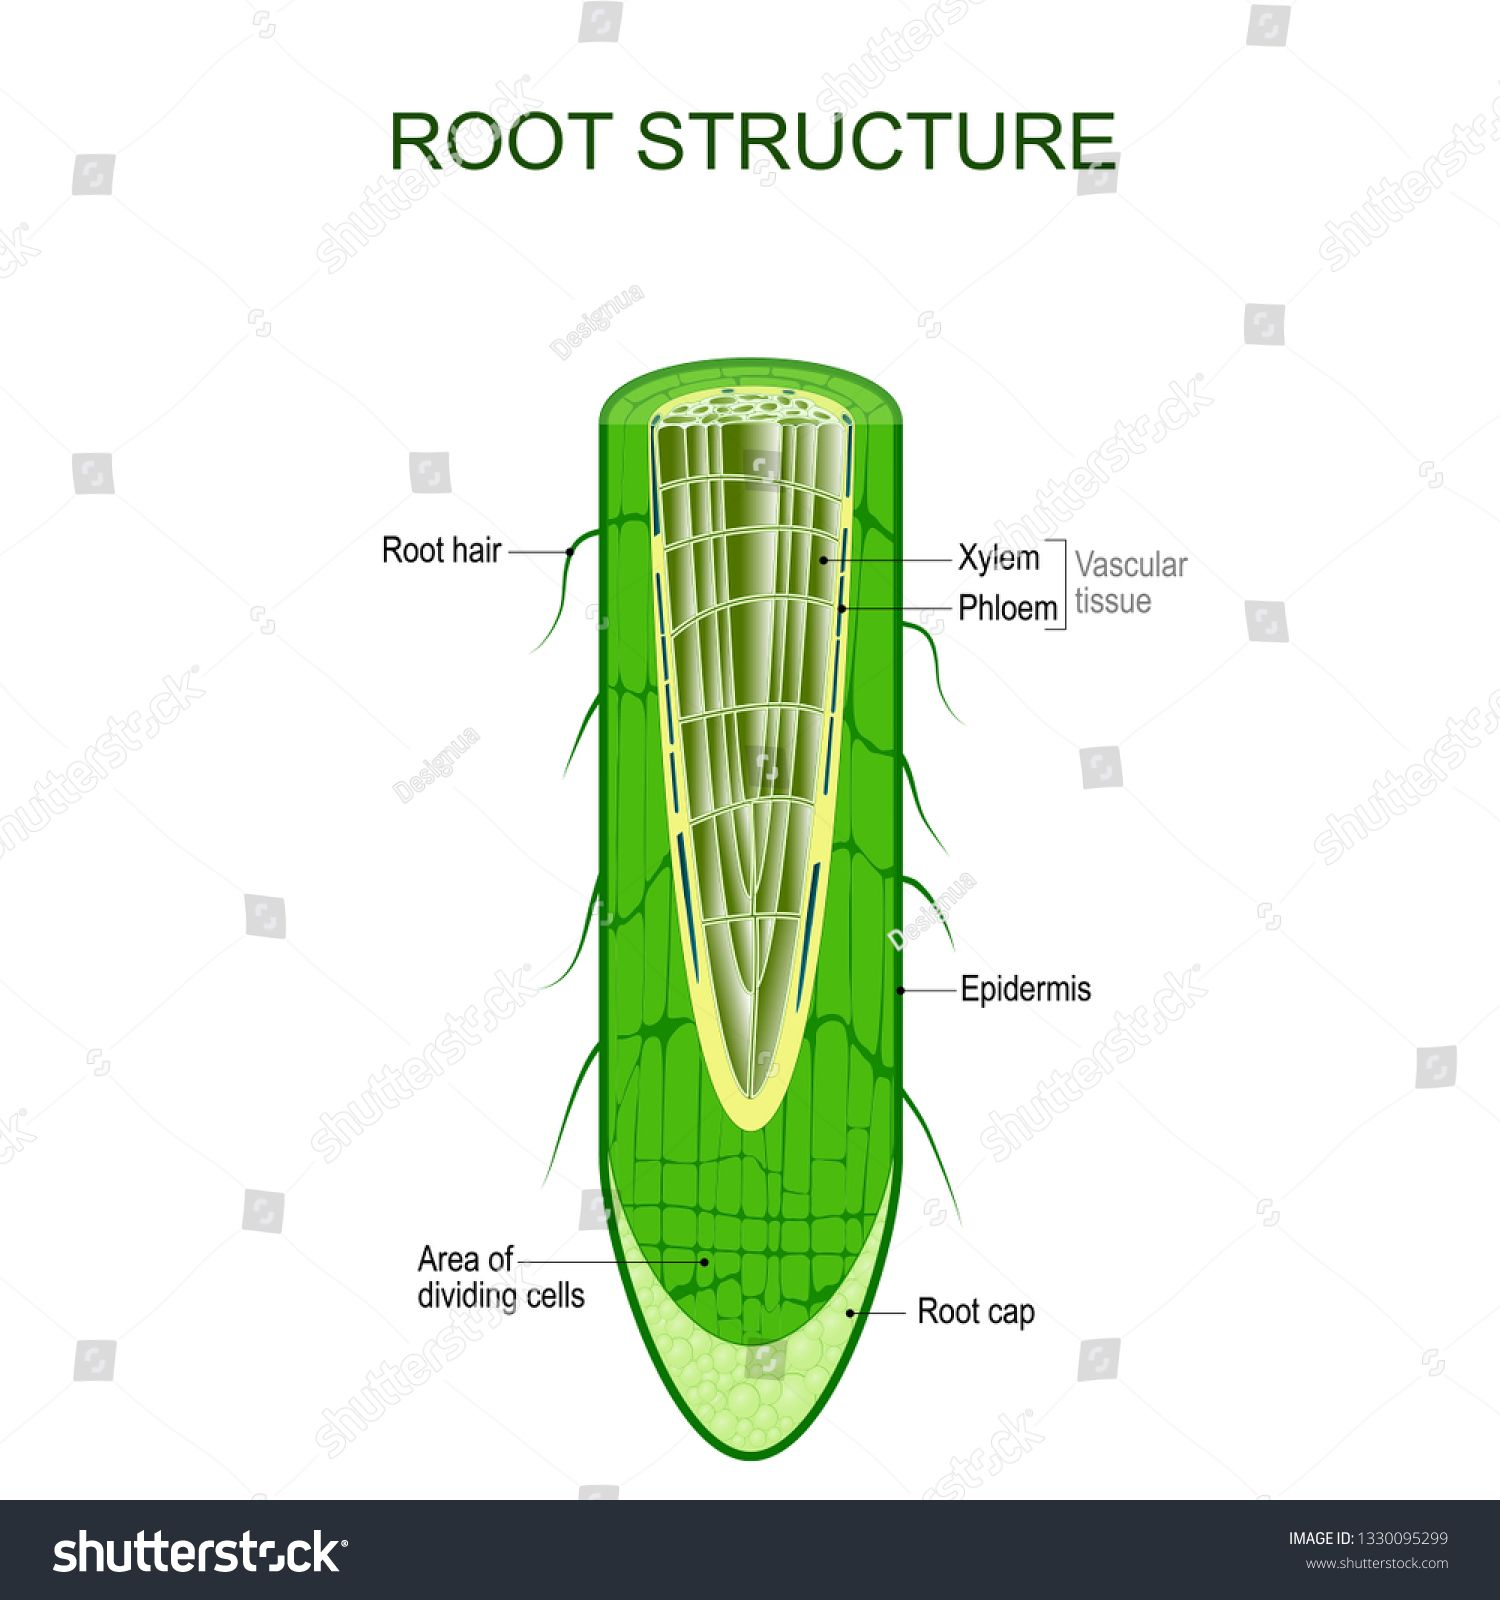 Root Structure Plant Anatomy The Cross Section Of The